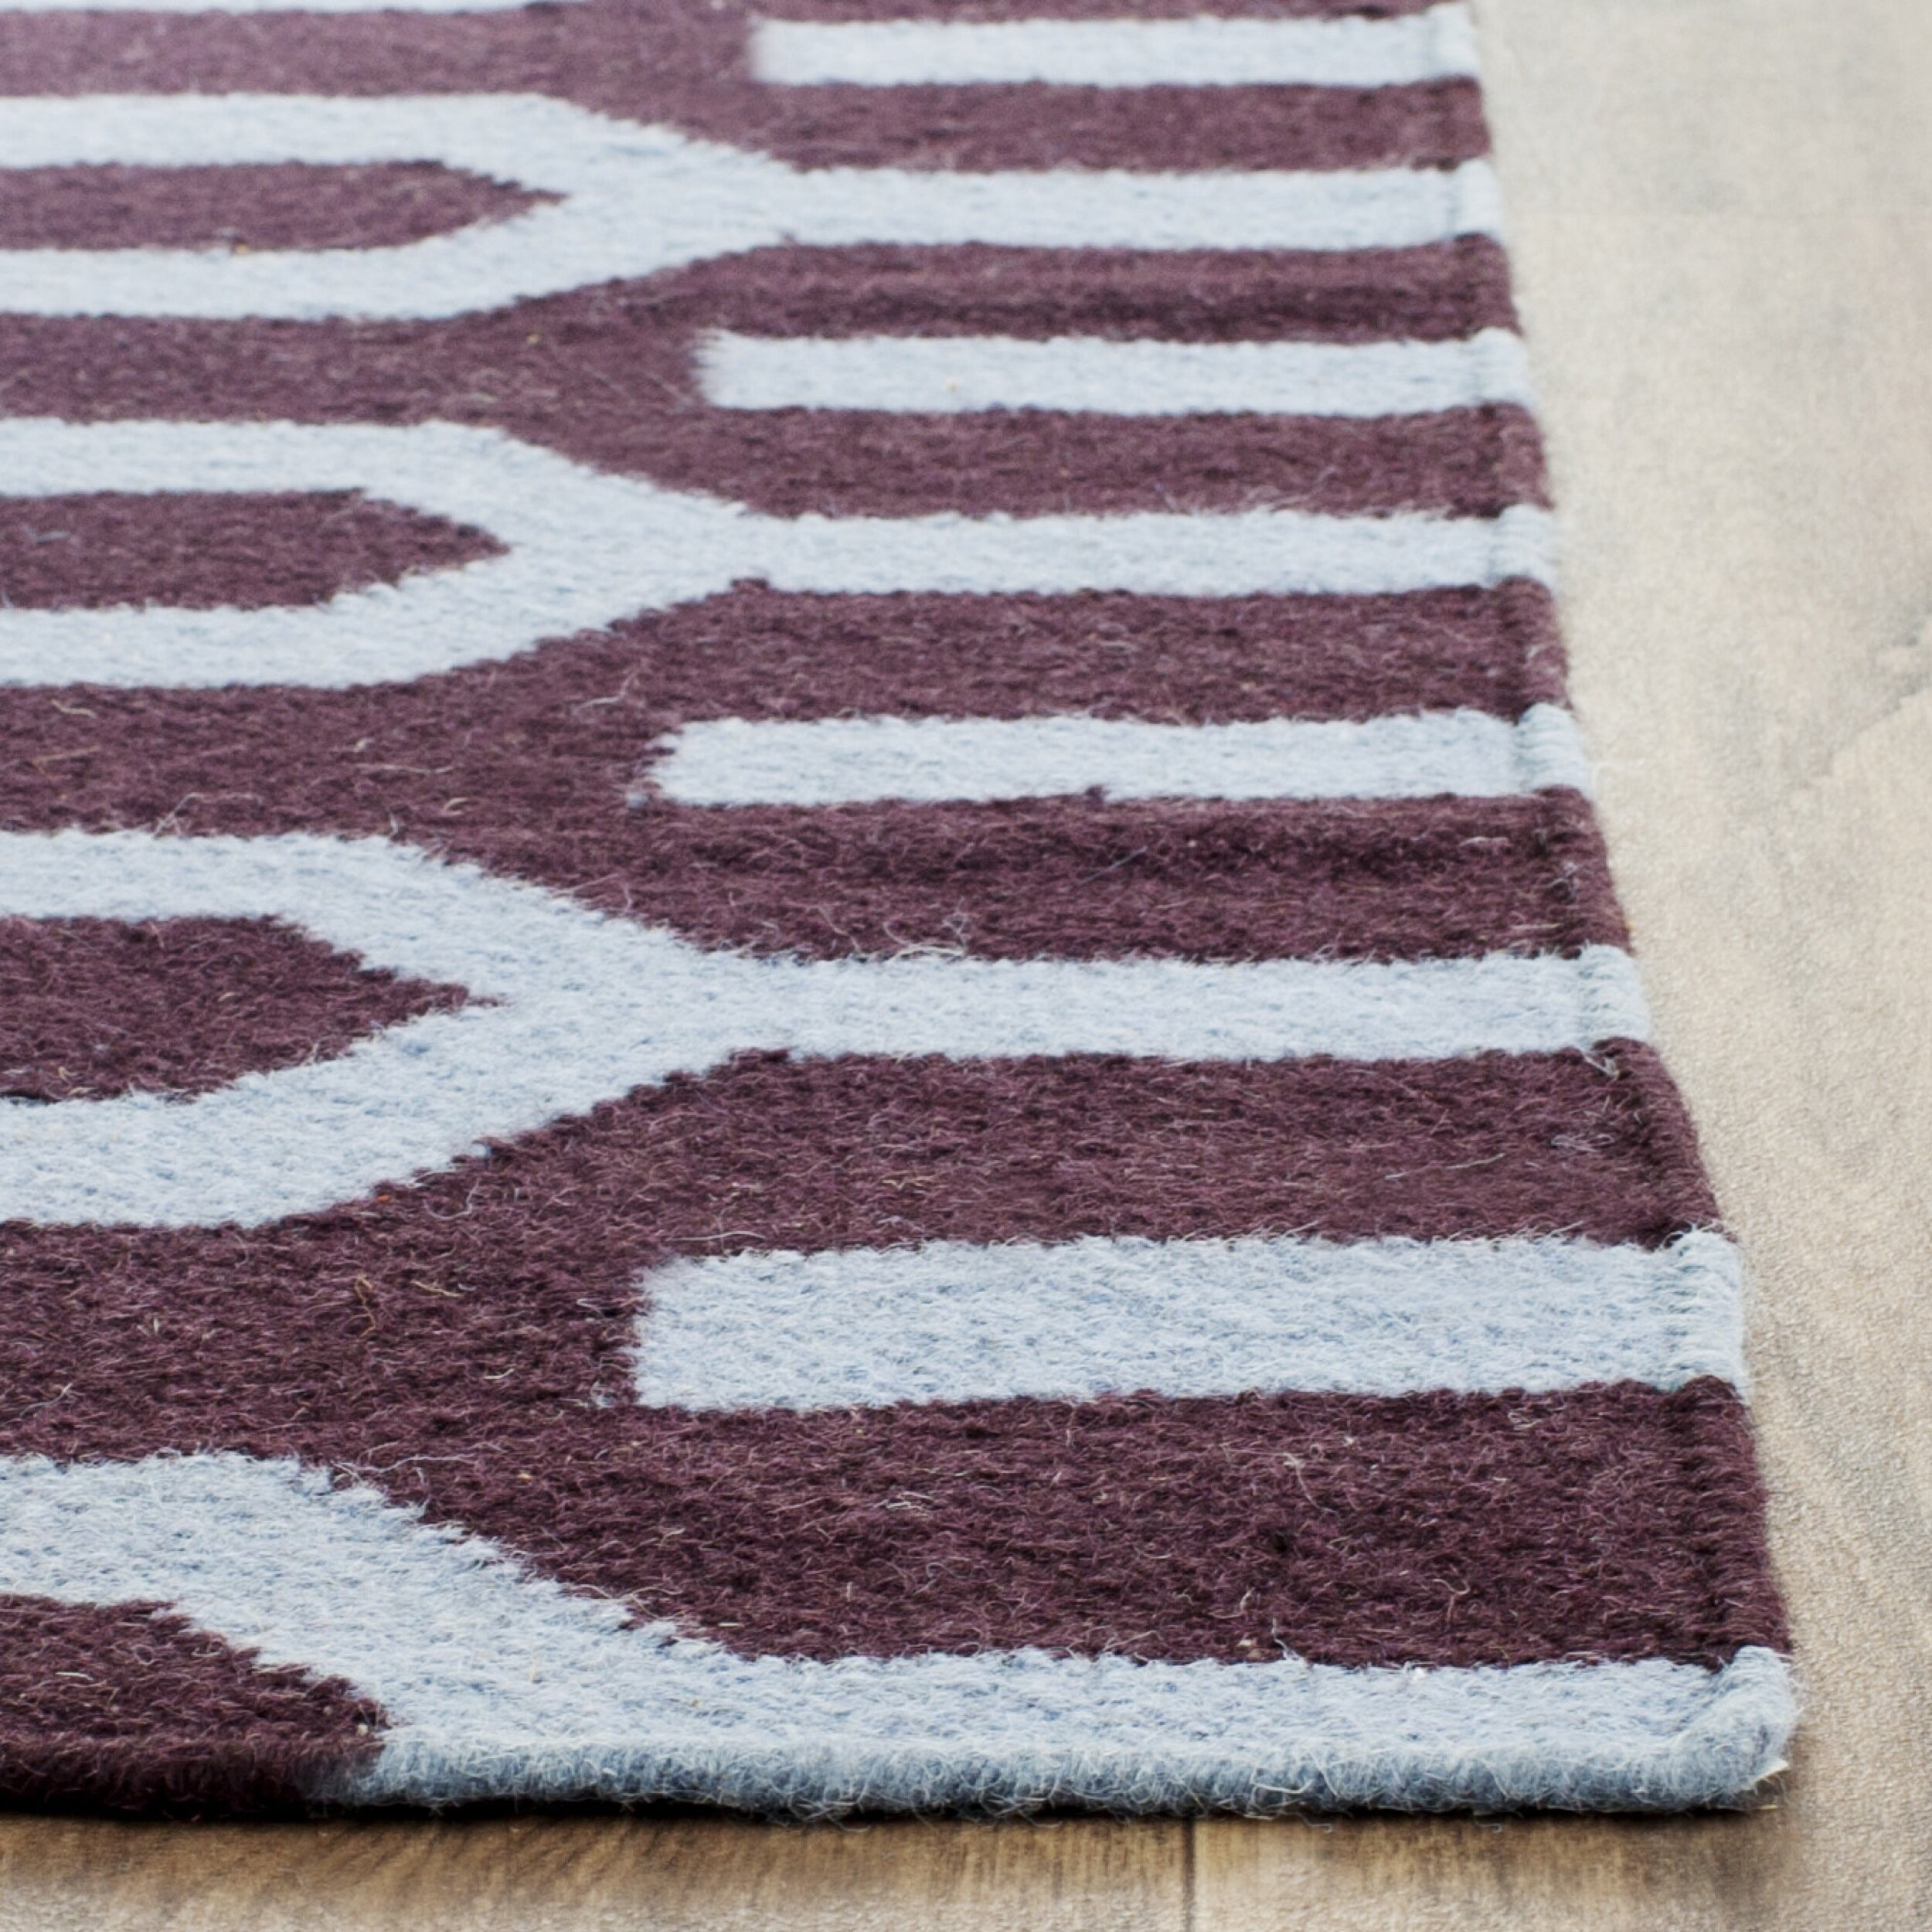 Xl Purple Rug: Safavieh Dhurries Purple/Blue Area Rug